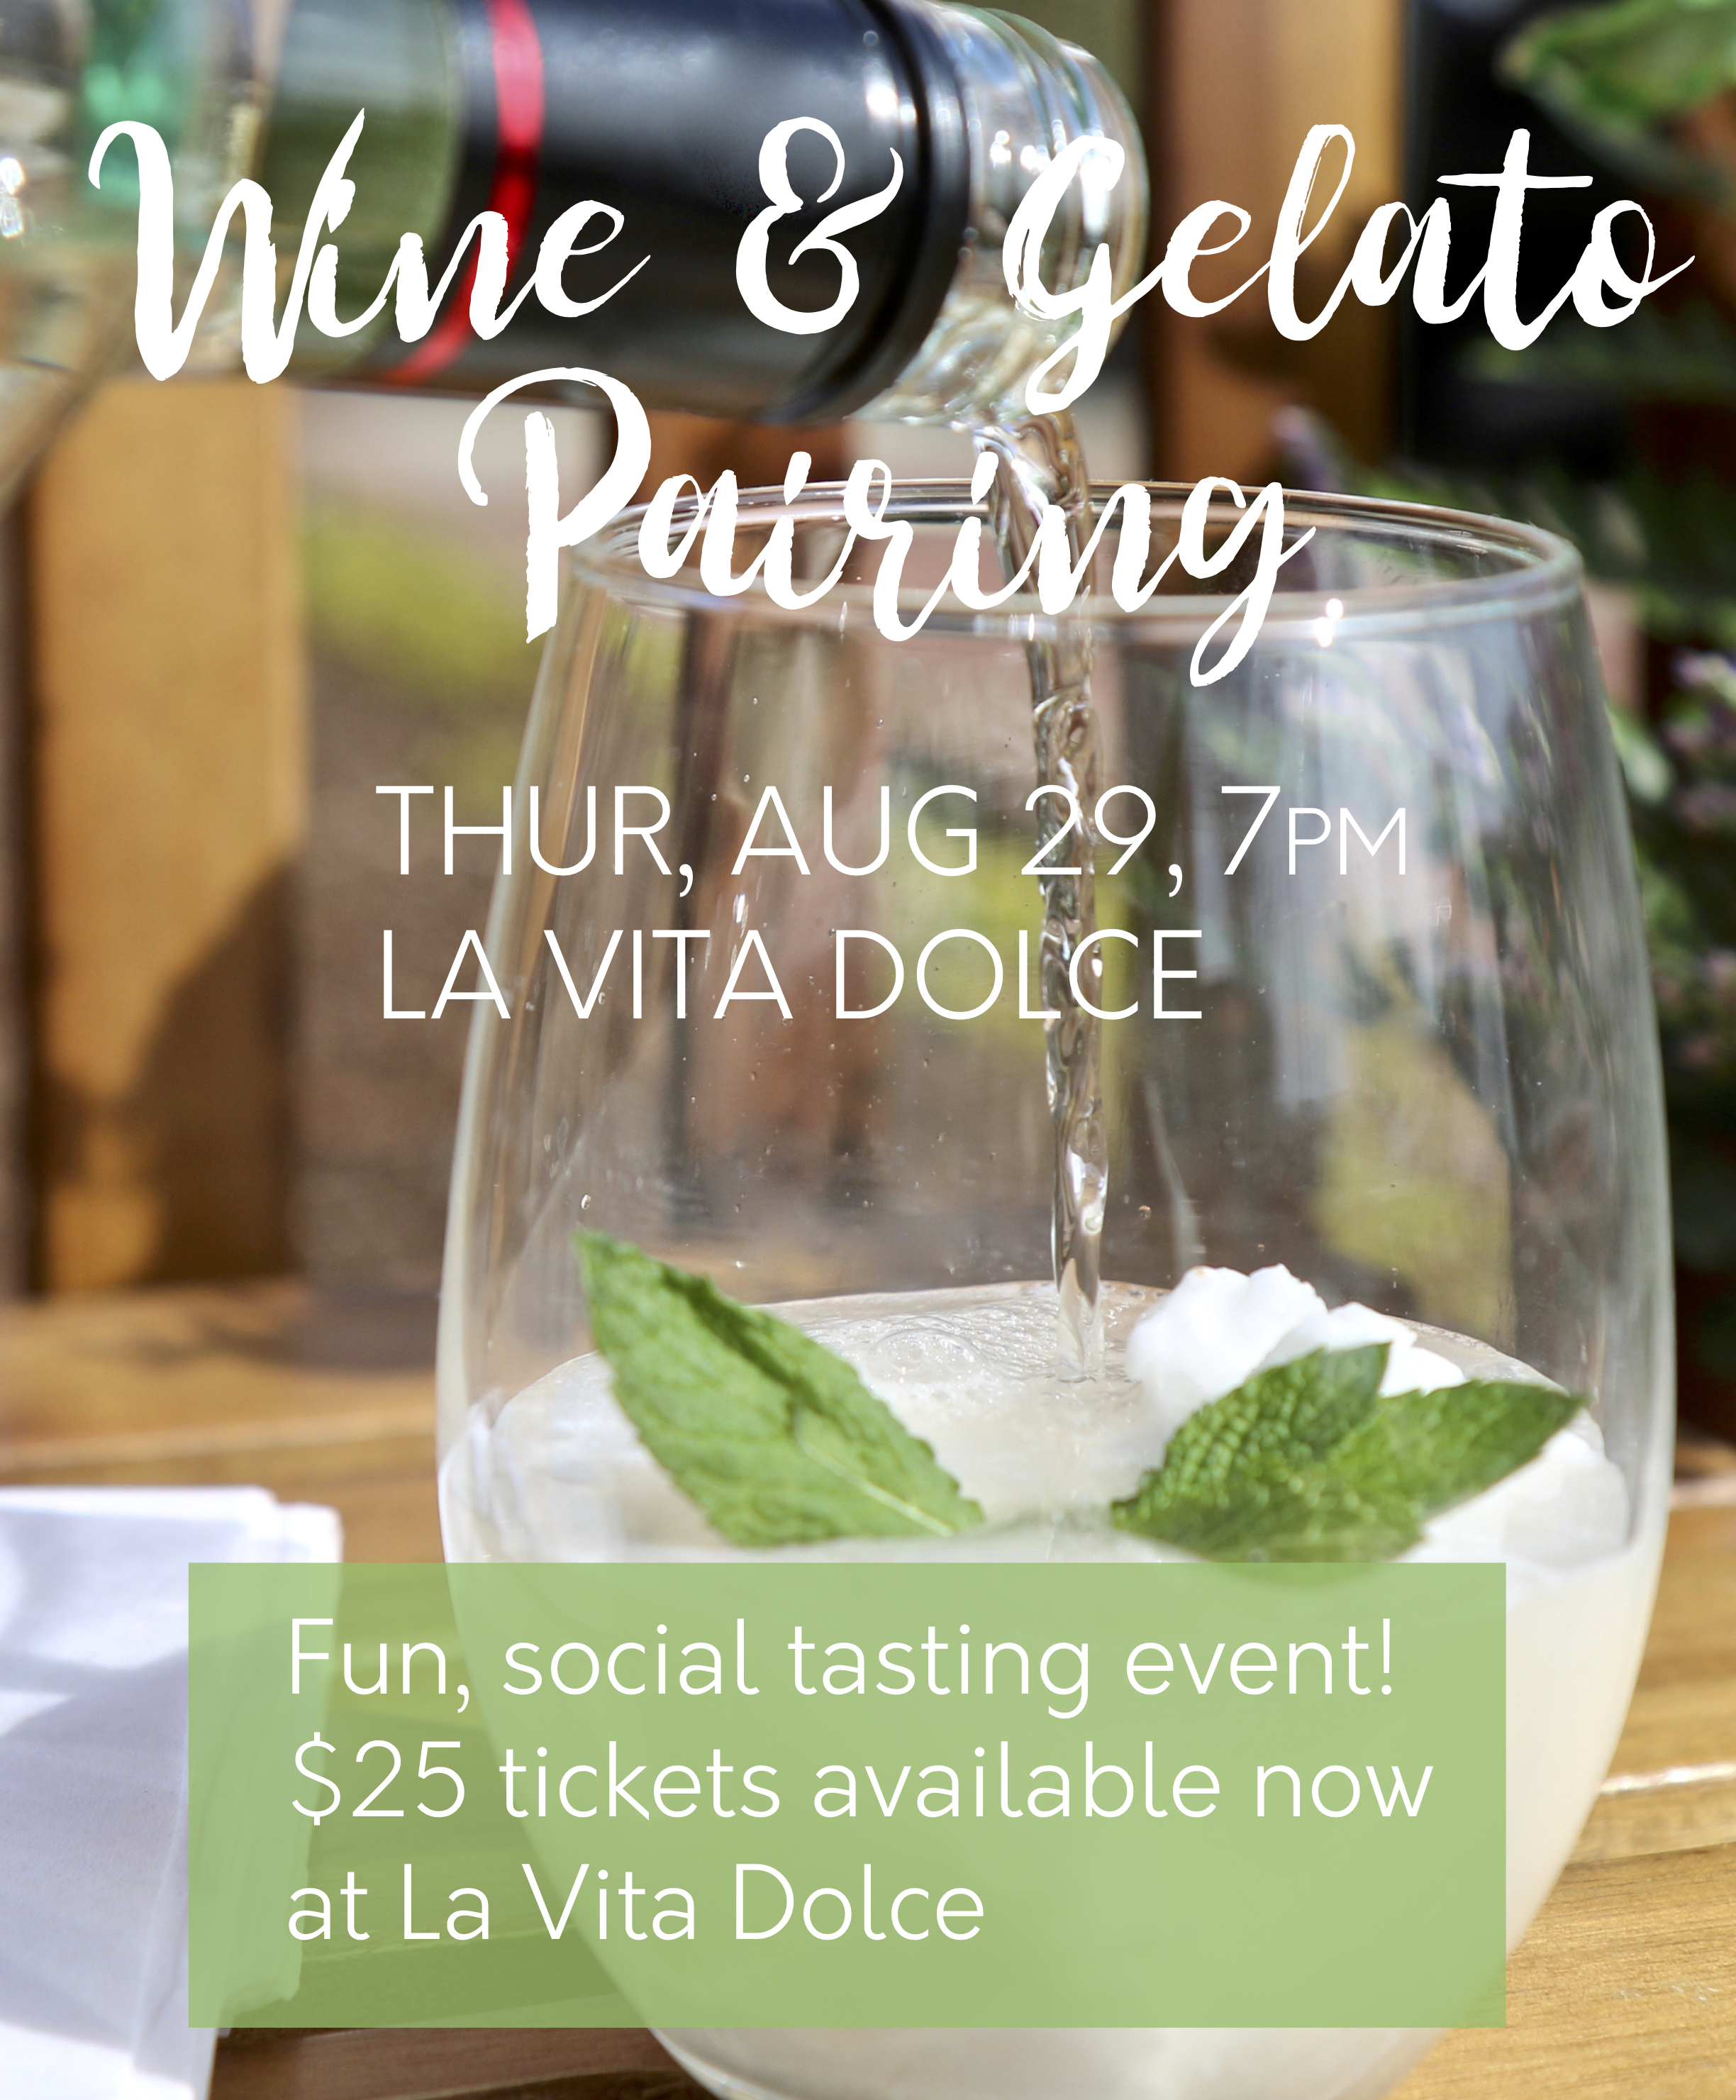 Wine Gelato Pairing Social Email Image png.png